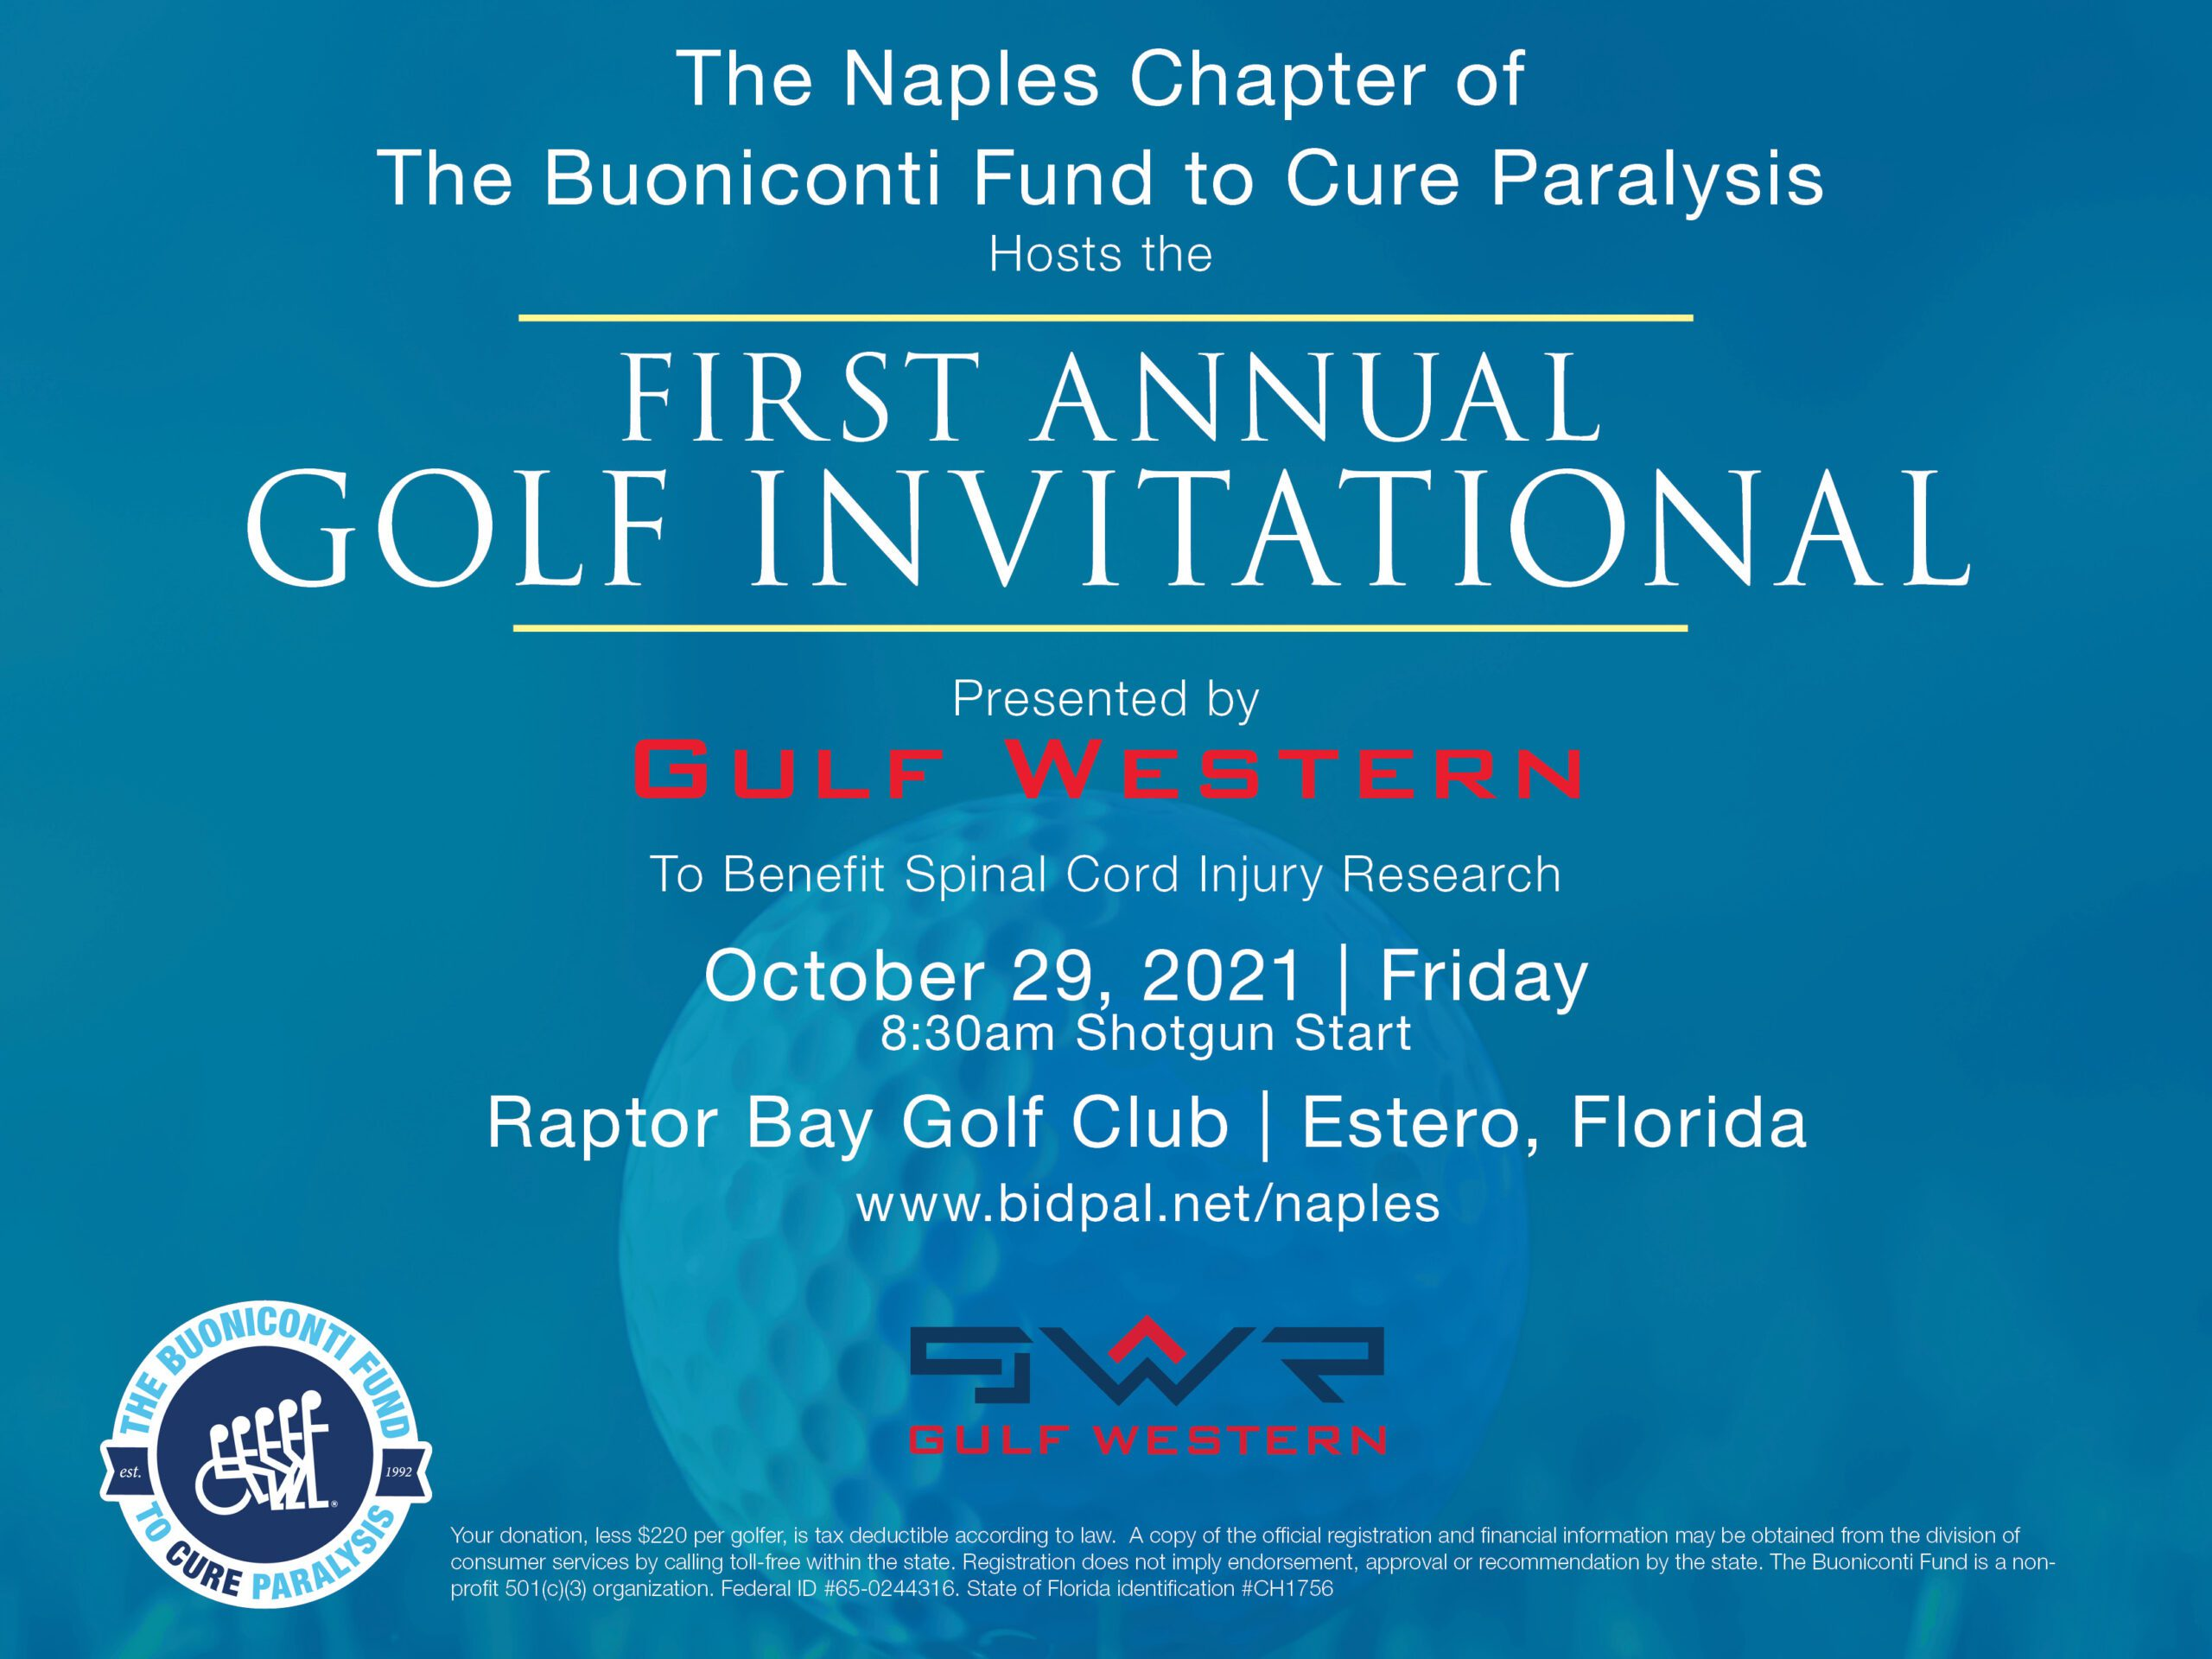 Naples Chapter First Annual Golf Invitational presented by Gulf Western